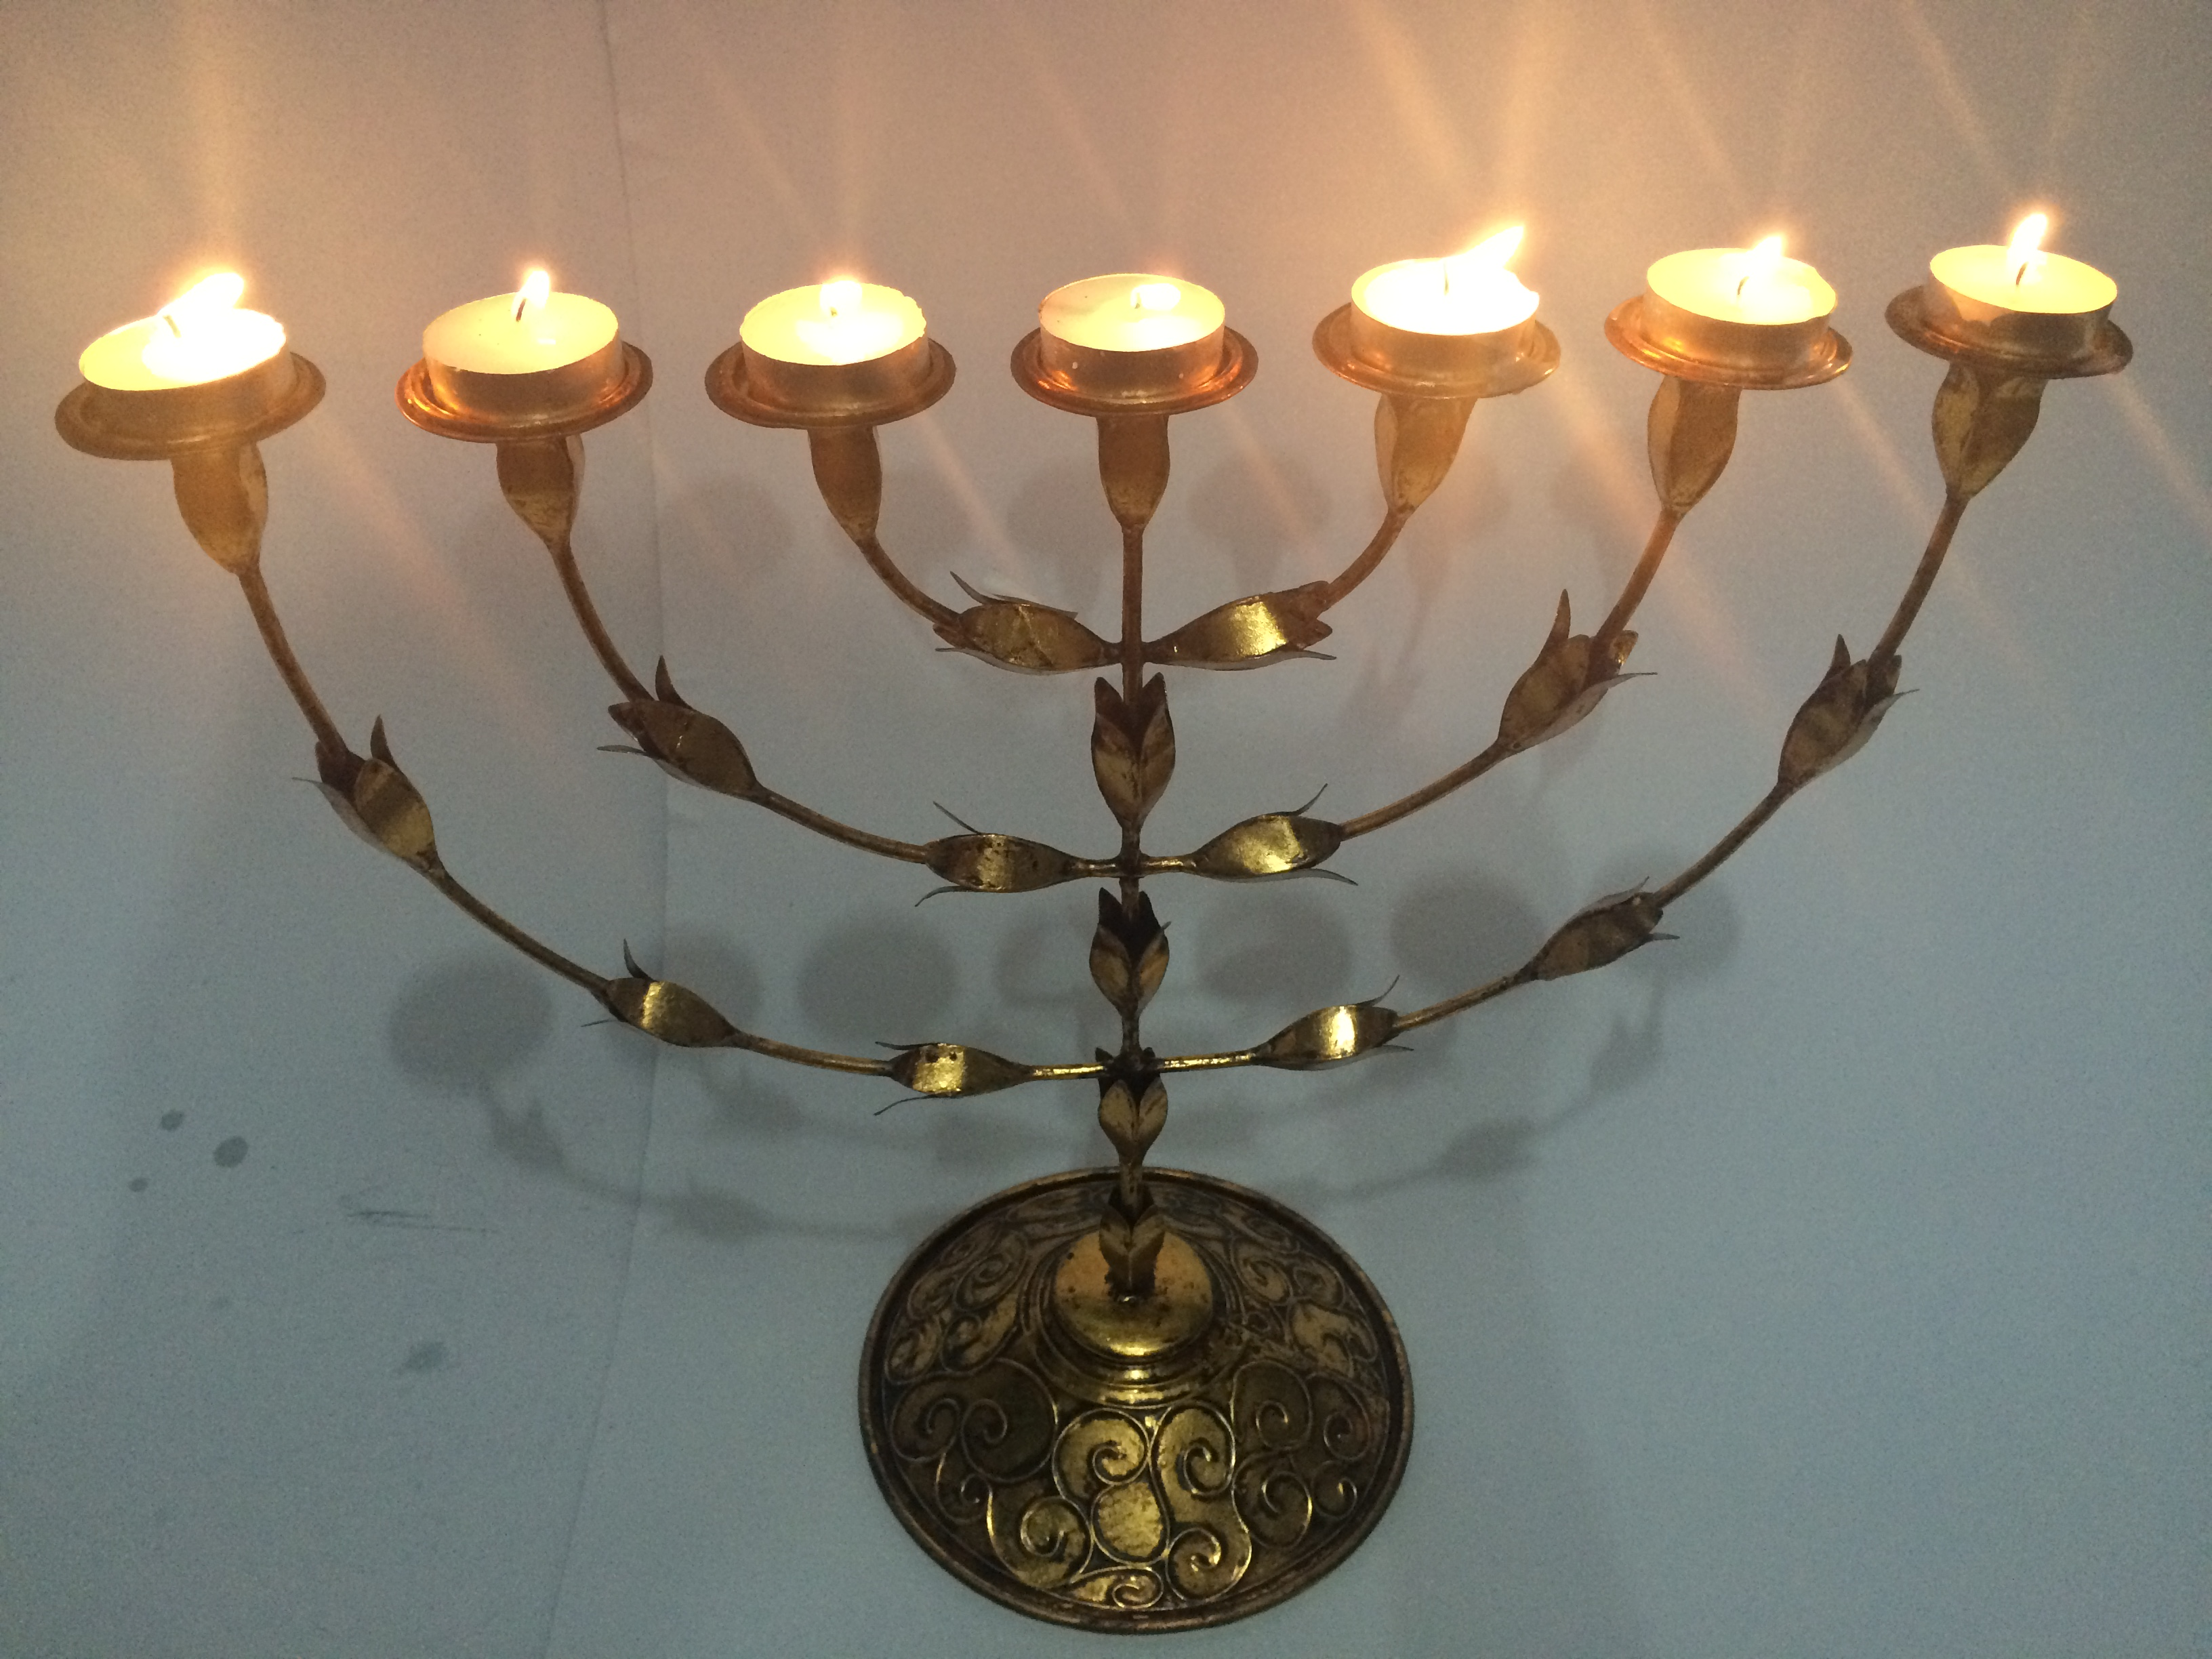 file 7 tea light candle menorah with petal design by the bluesmith